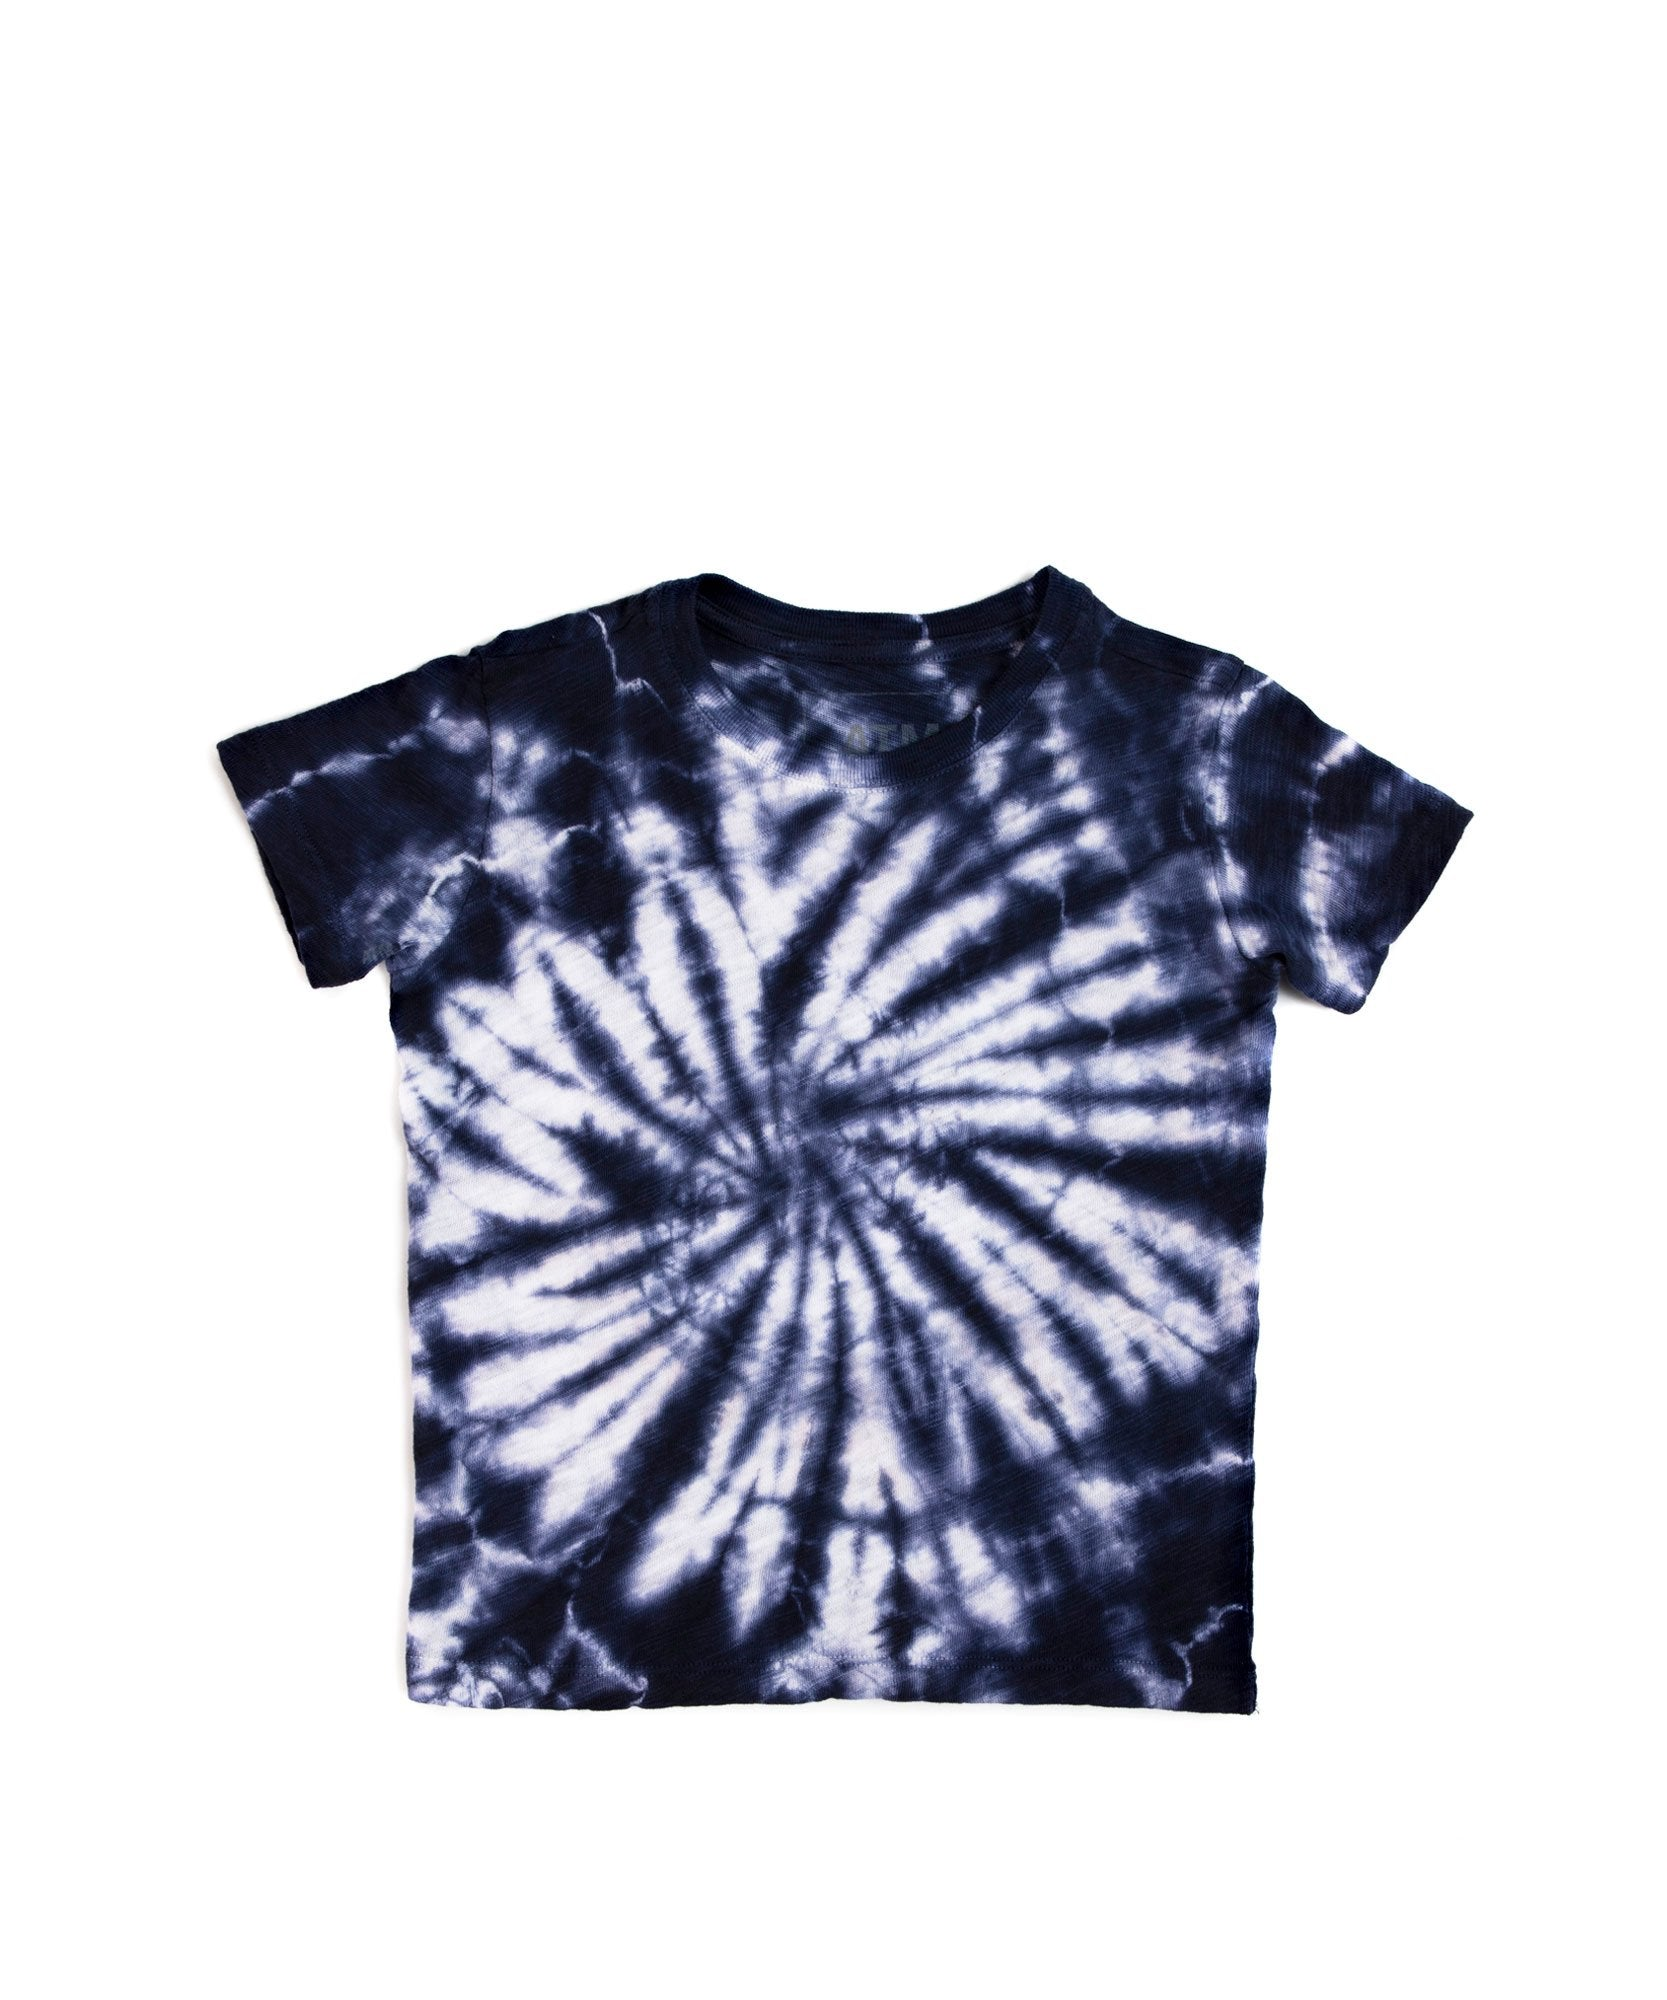 Deep Navy Tie Dye Kids Slub Jersey Short Sleeve Tee - Kid's Cotton Short Sleeve Tee by ATM Anthony Thomas Melillo